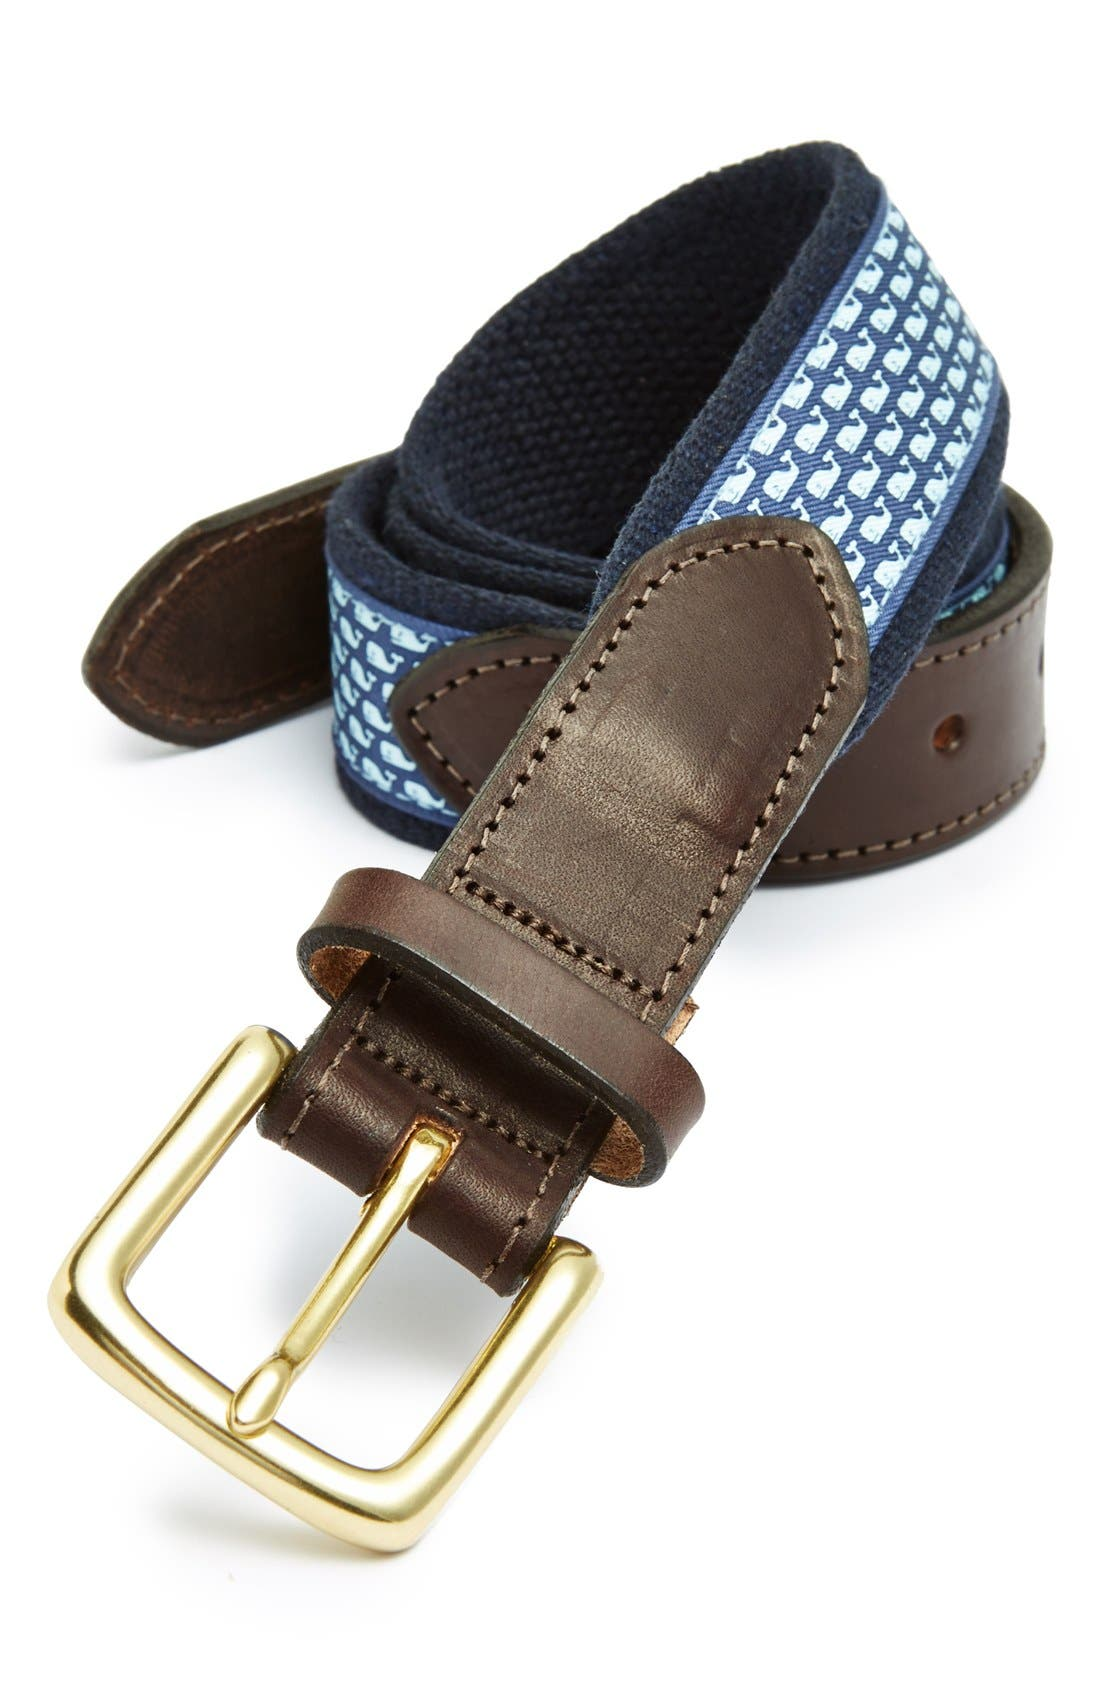 Vineyard Vines 'Whale Club' Leather & Canvas Belt